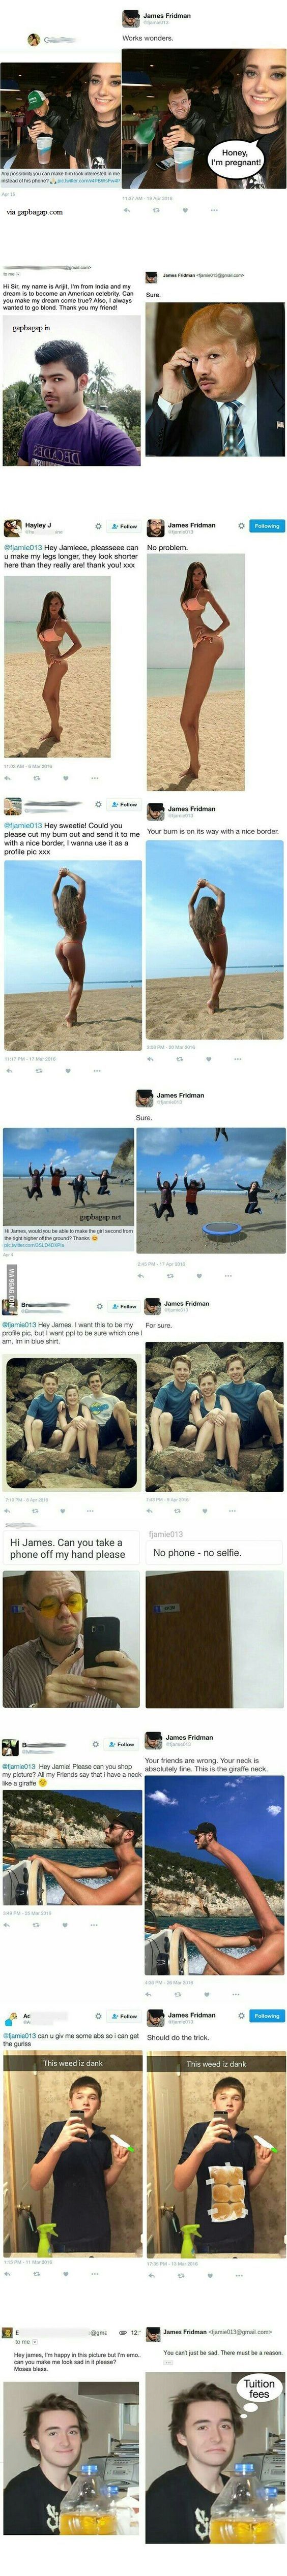 Top 10 Funny Photoshop By James Fridman